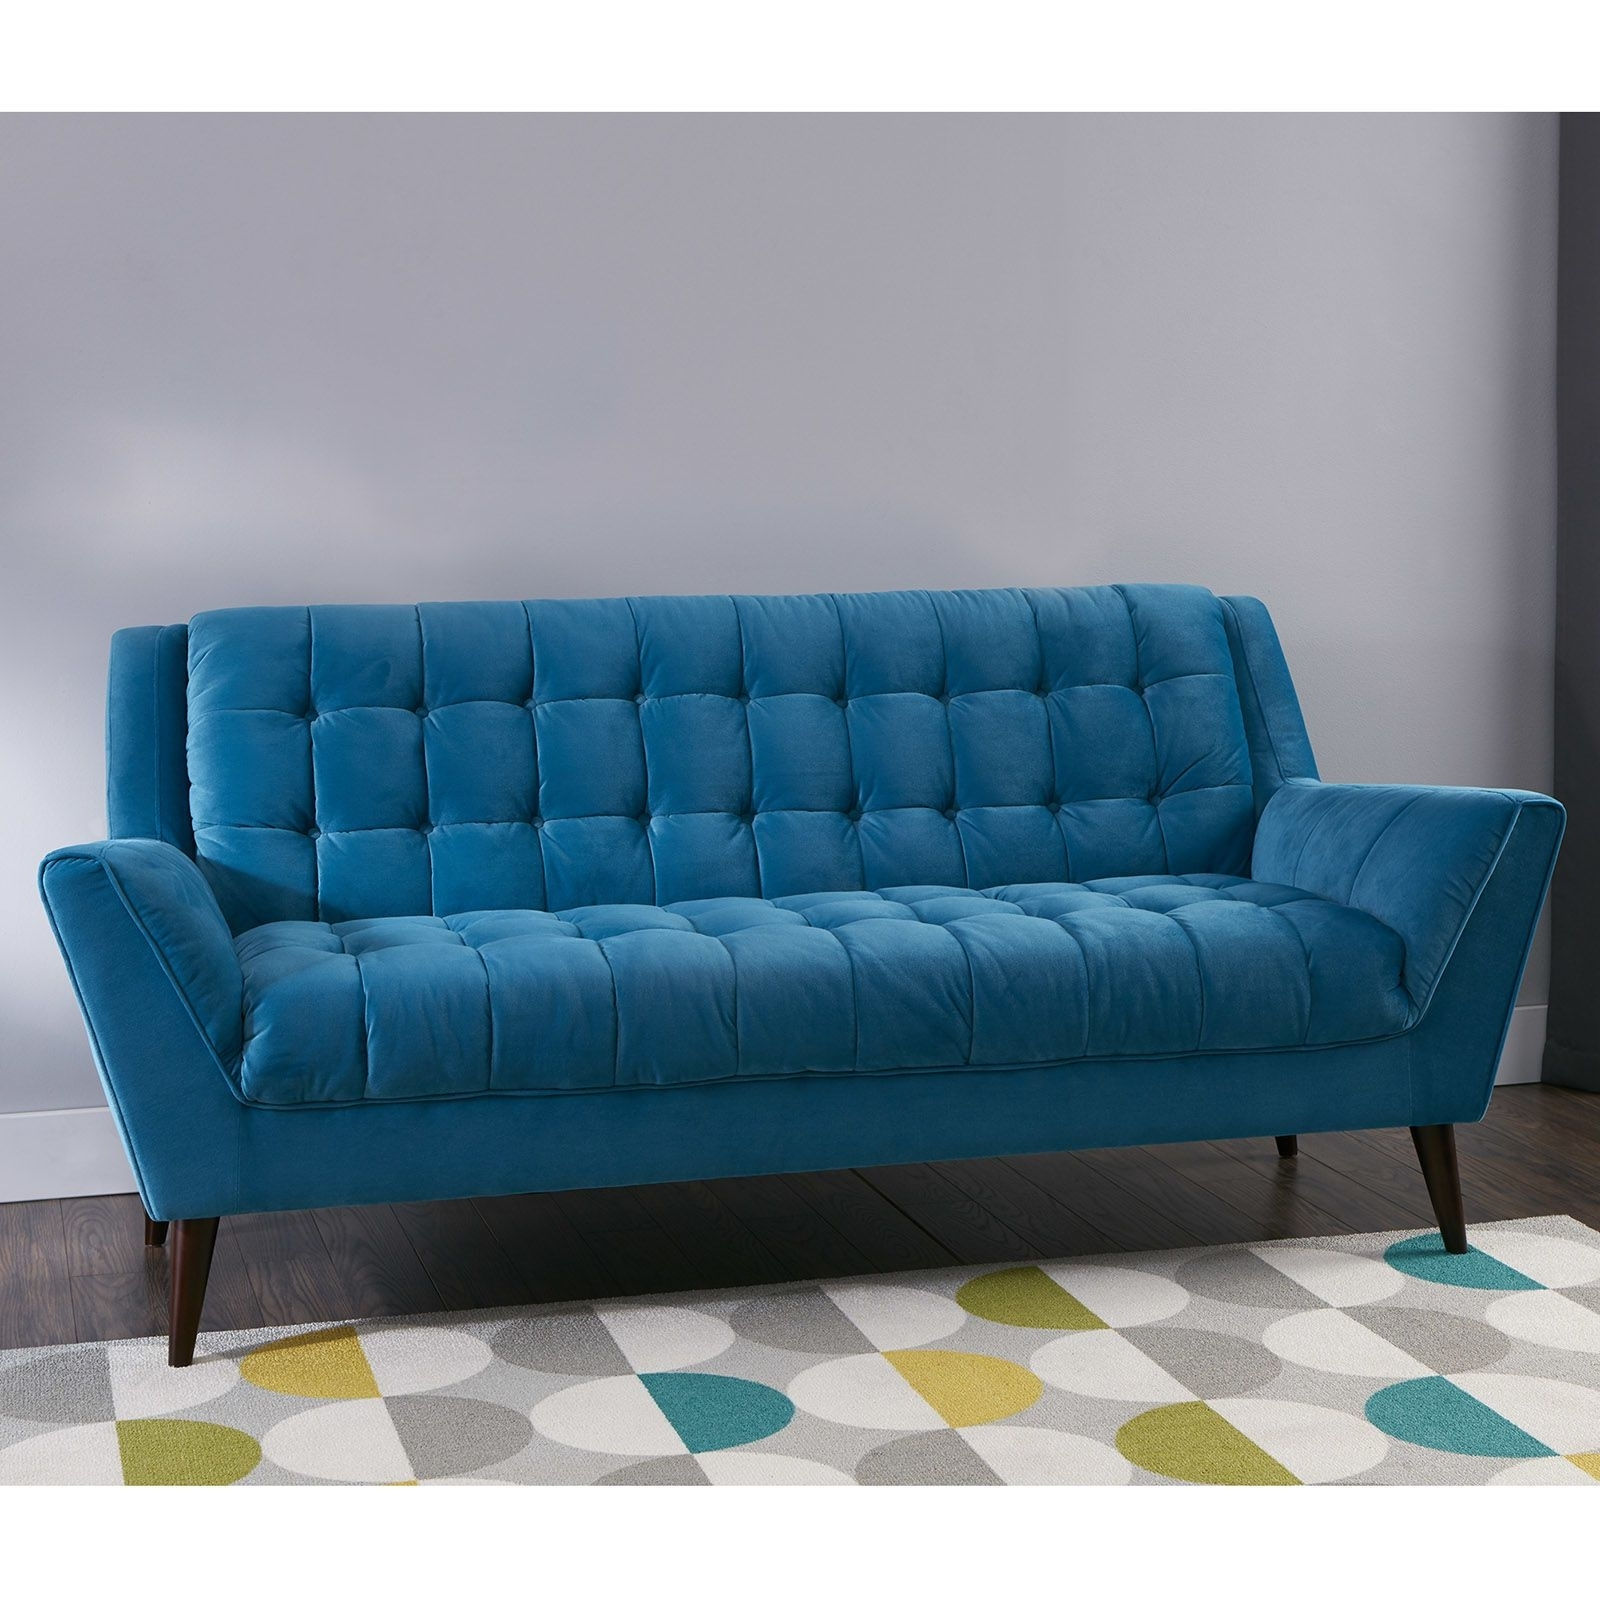 Unbelievable Braxton Midcentury Modern Retro Sofa Teal At Home Of Within Well Known Cheap Retro Sofas (View 18 of 20)